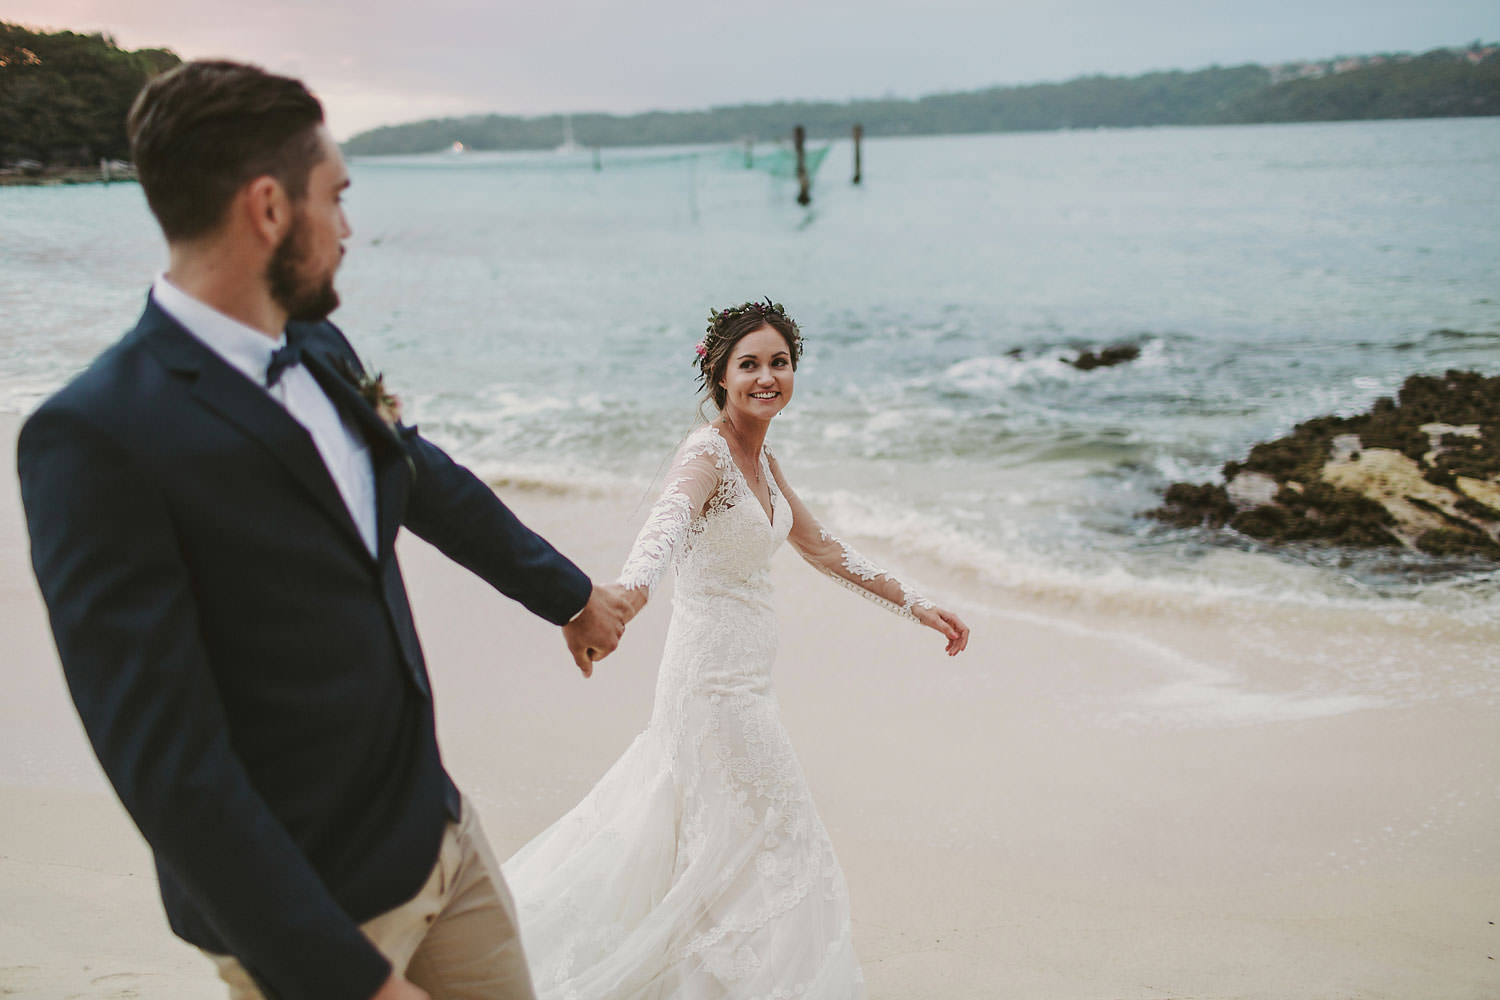 brianna-sam-getting-hithced-at-shark-bay-vaucluse-in-a-small-intimate-wedding-with-hunter-valley-wedding-photographer-ben-adams-070.jpg